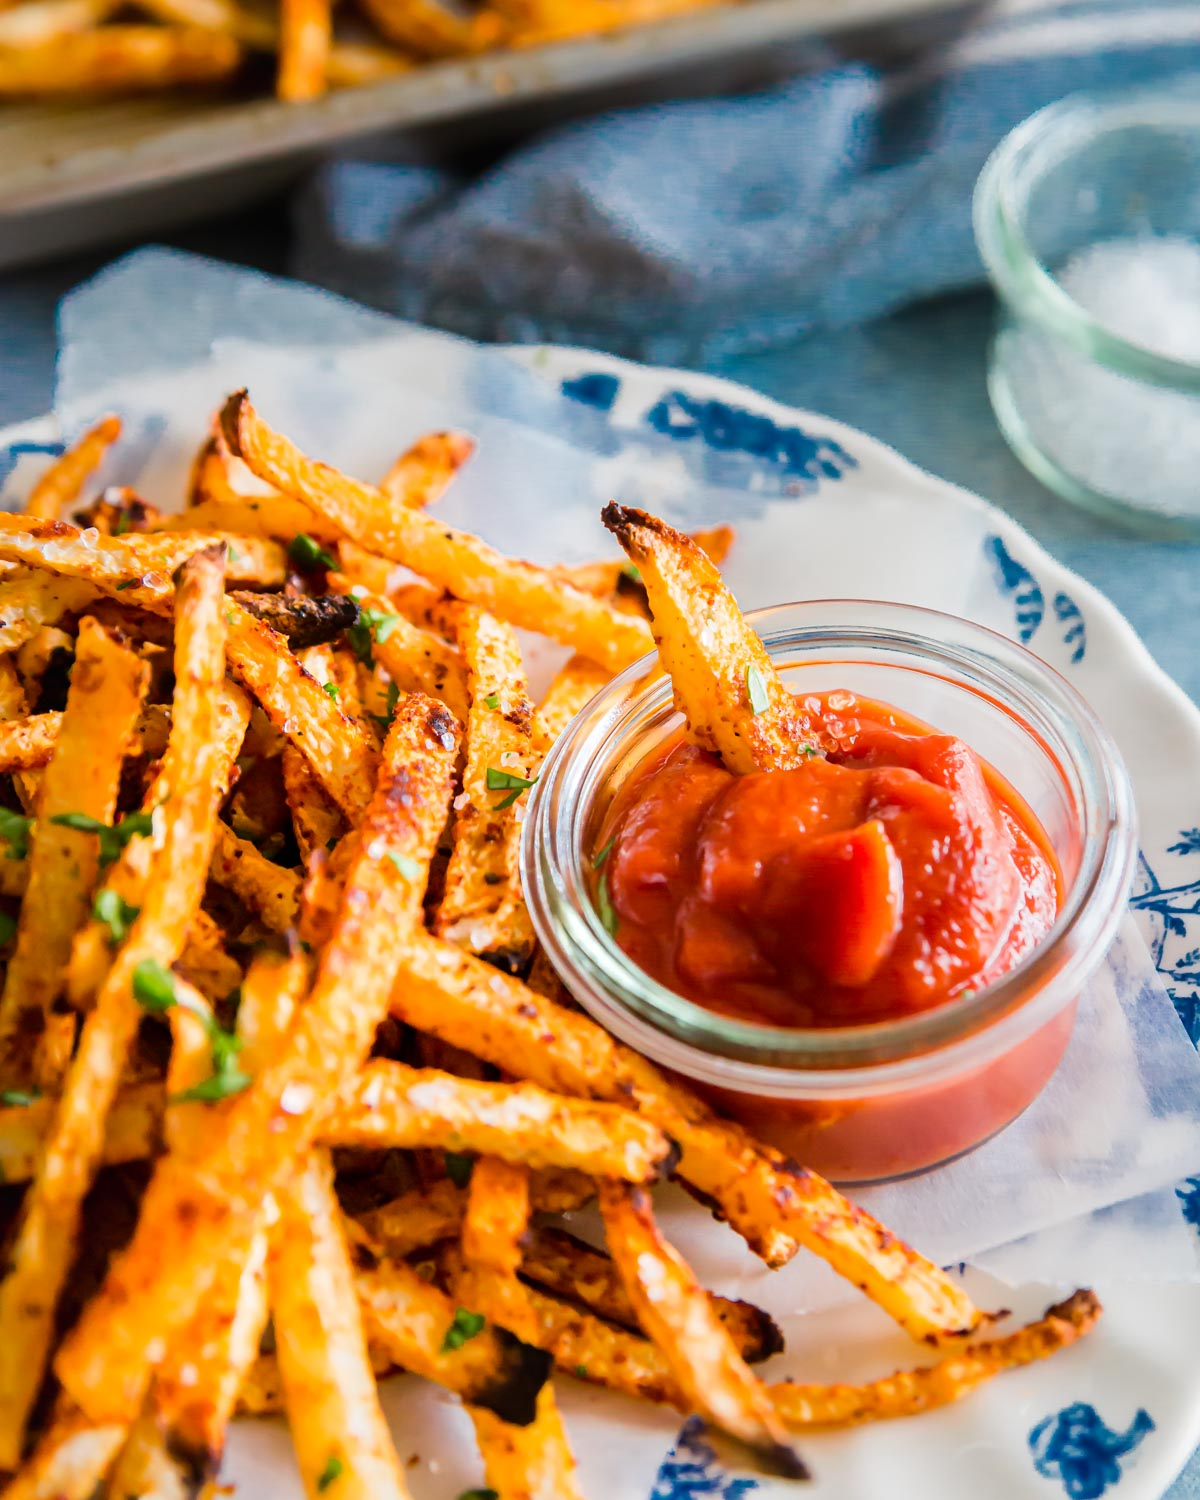 Simply seasoned and baked jicama fries make a great healthier alternative to regular fries when the craving strikes!